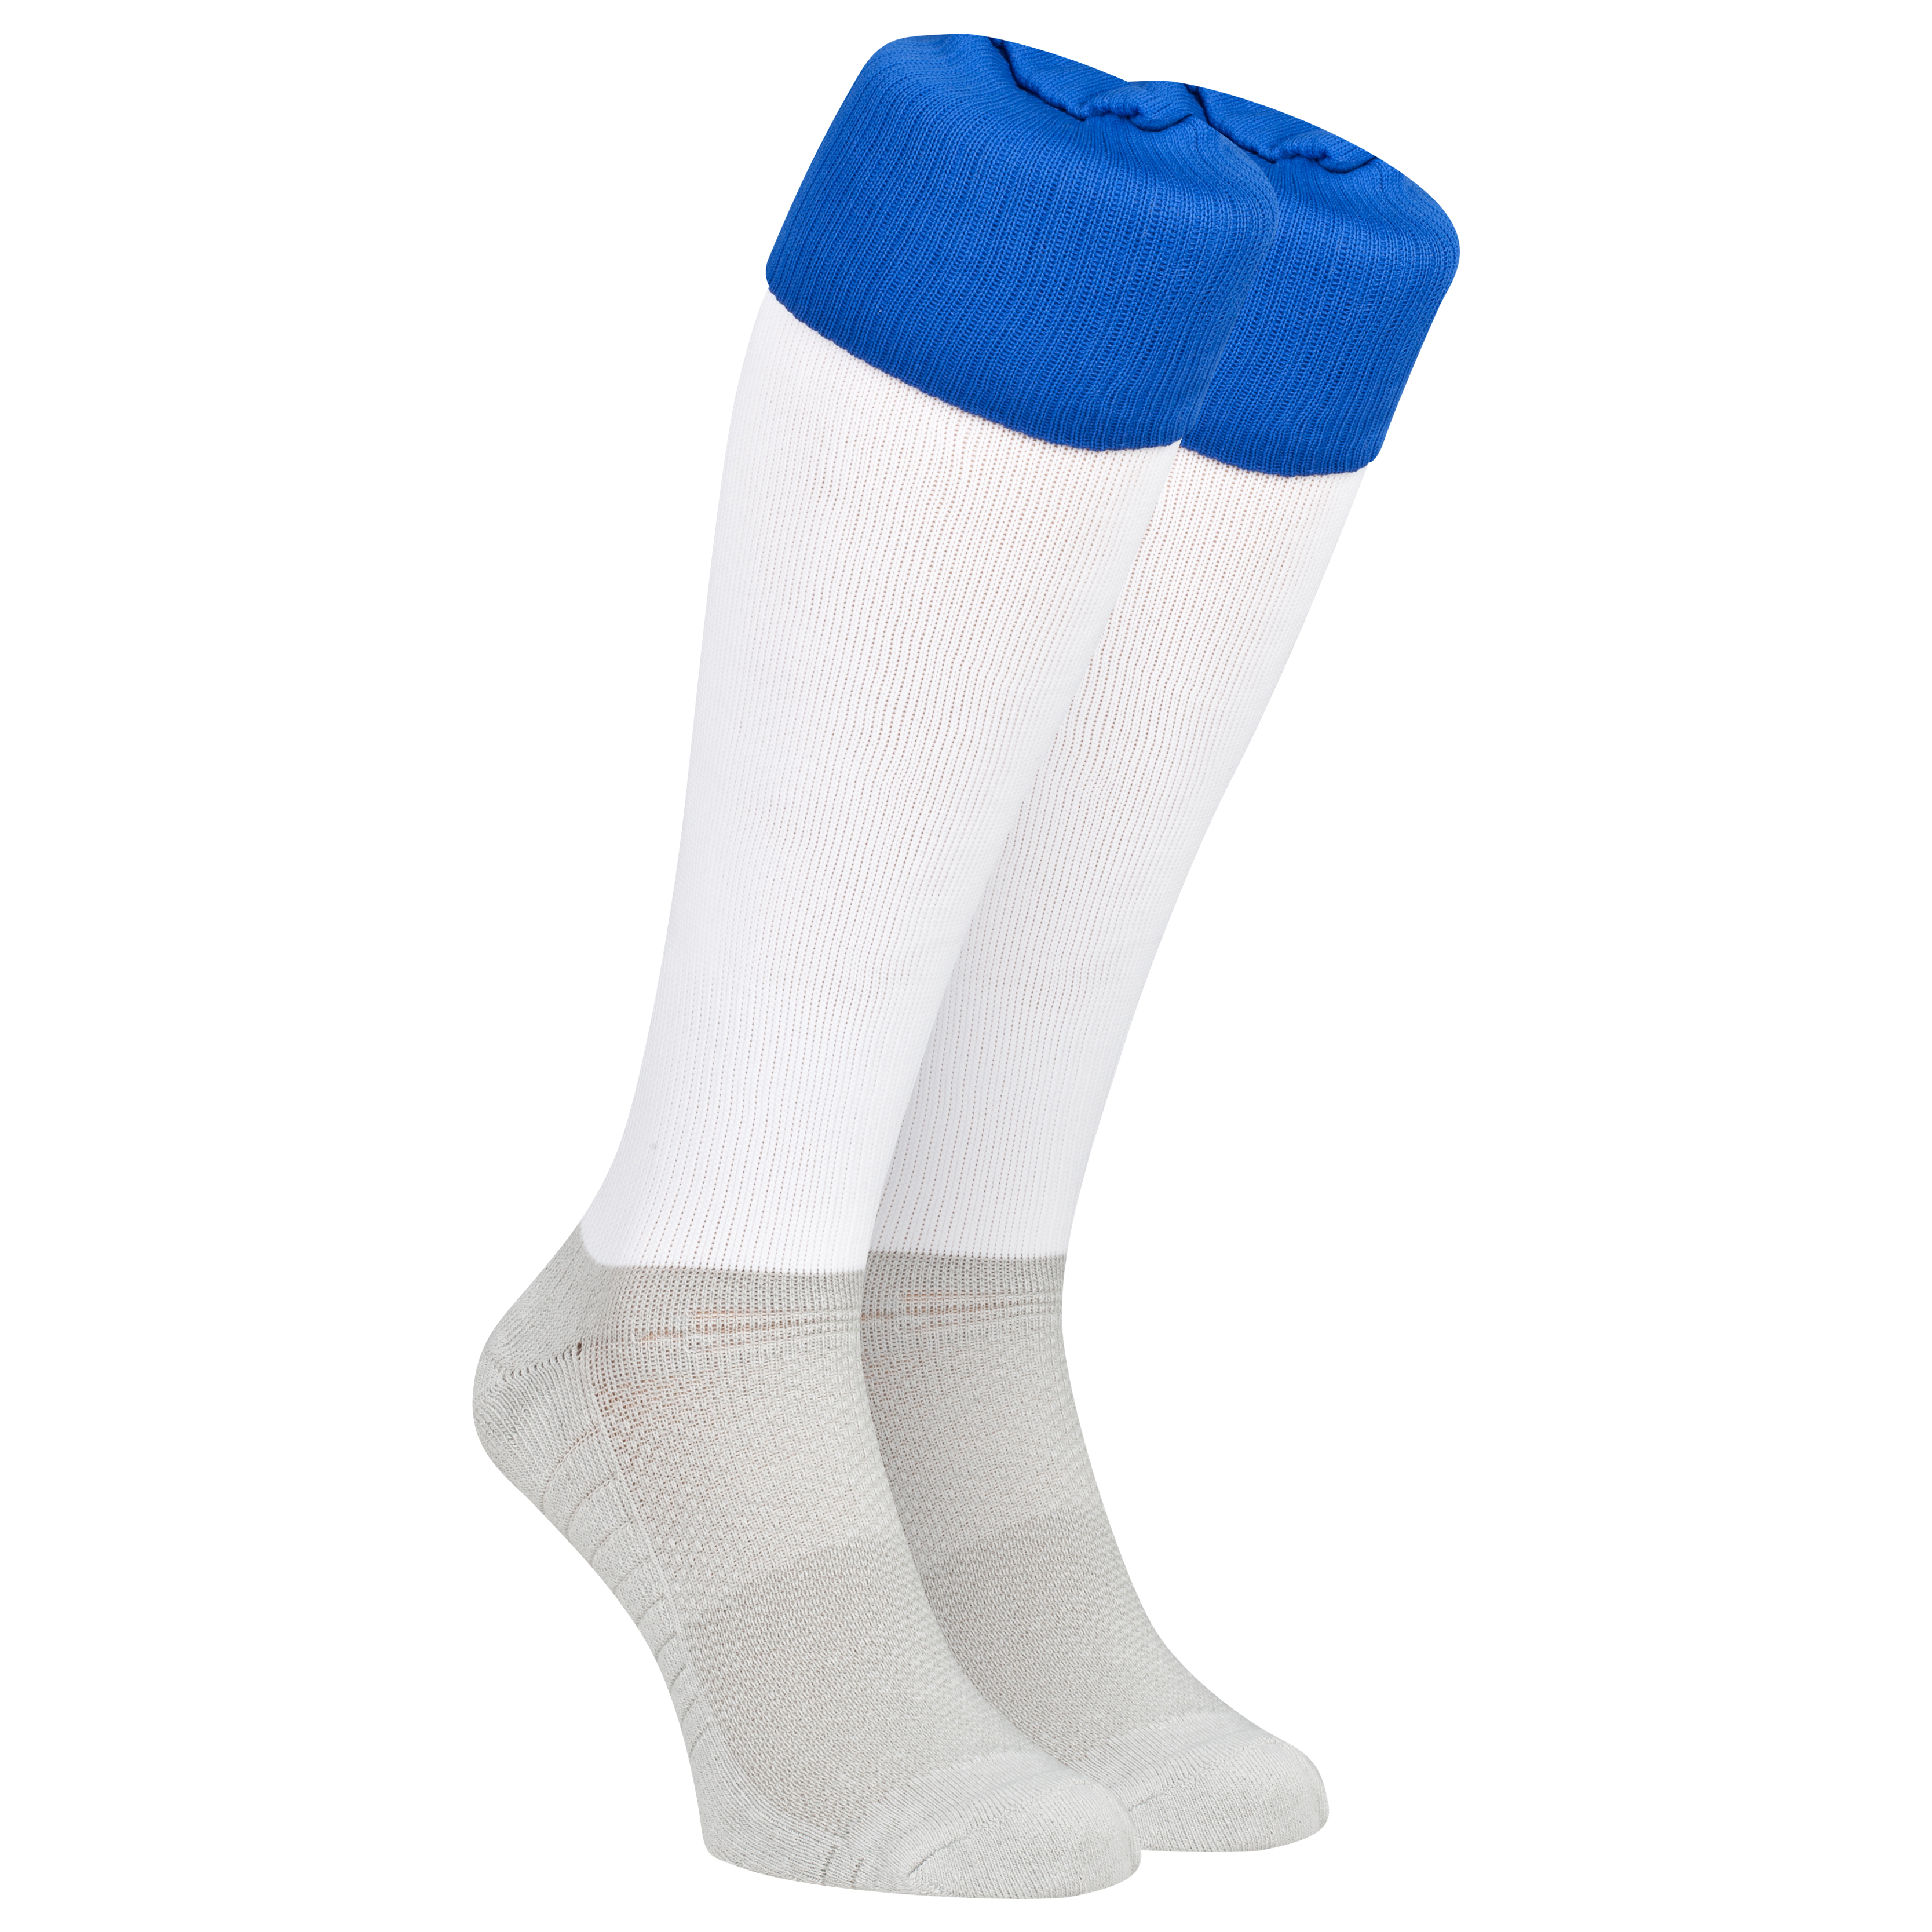 Glasgow Rangers Away Socks 2012/13